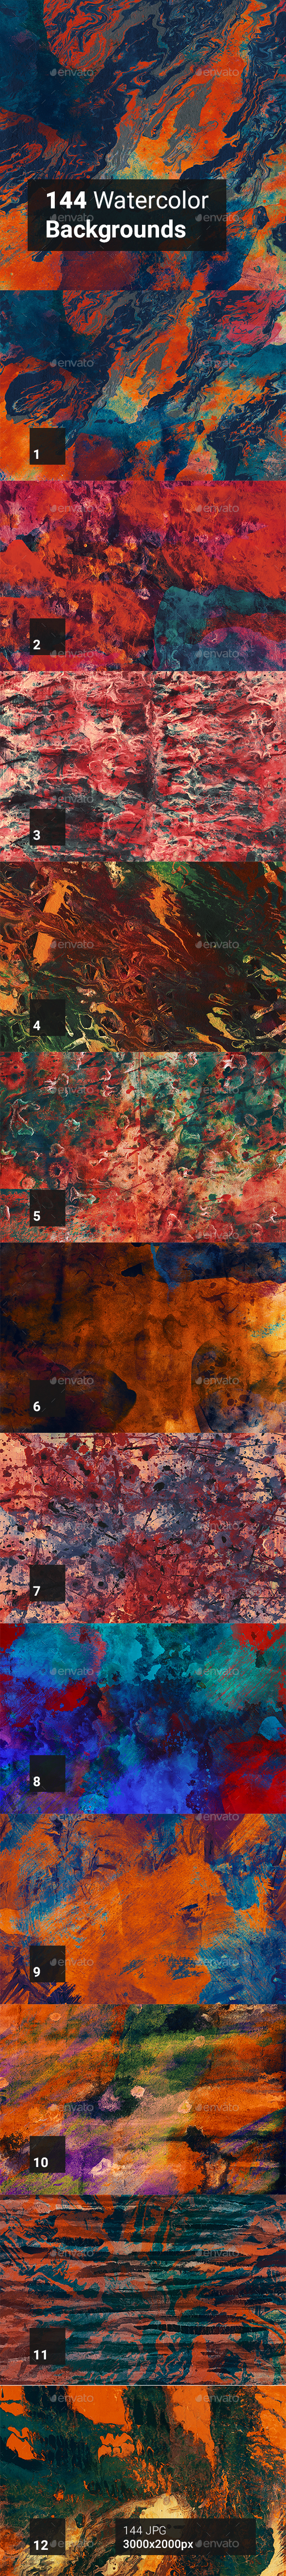 144 Watercolor Backgrounds - Abstract Backgrounds